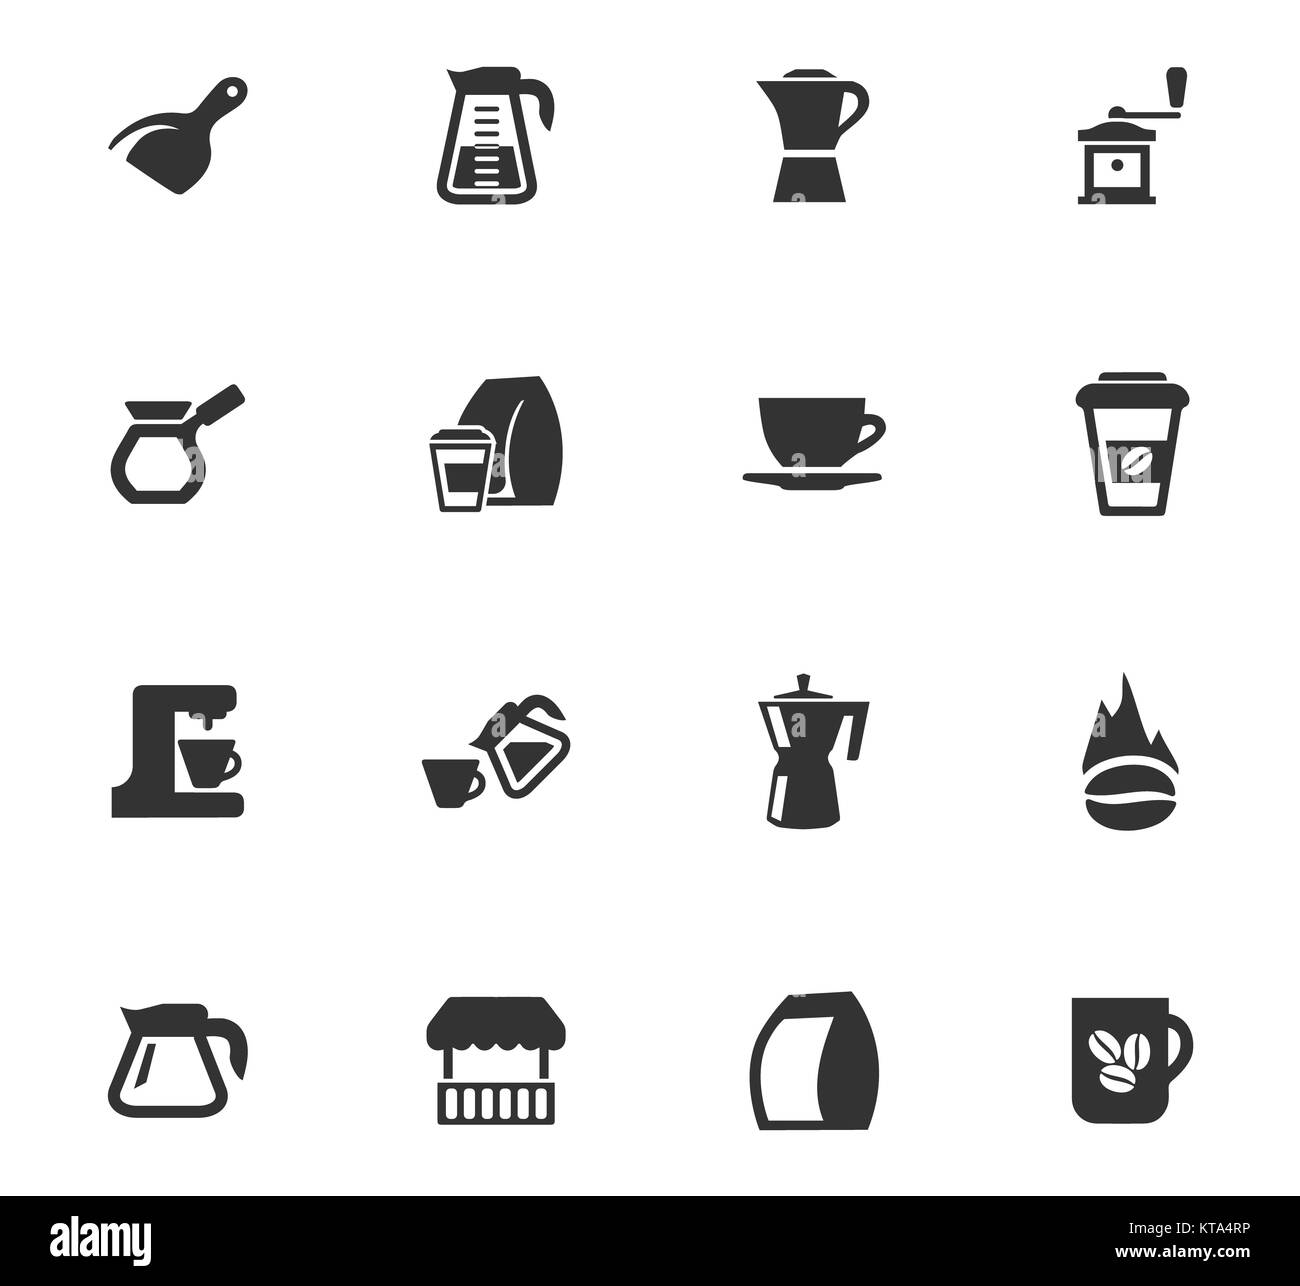 Coffee icons set - Stock Image